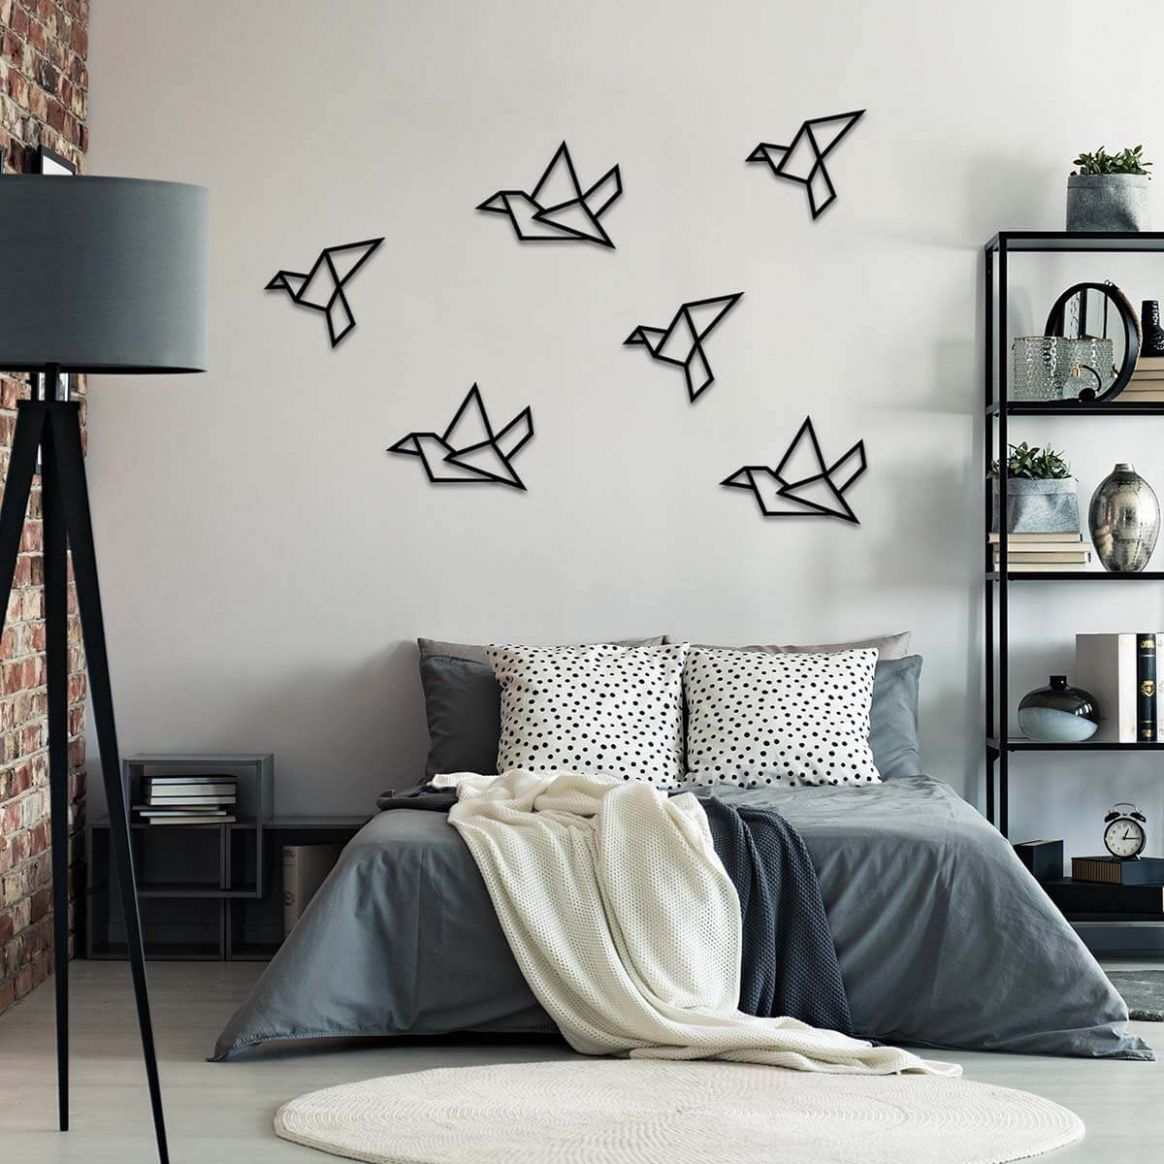 11 Best Metal Wall Decor Ideas and Designs for 11 - wall decor ideas metal